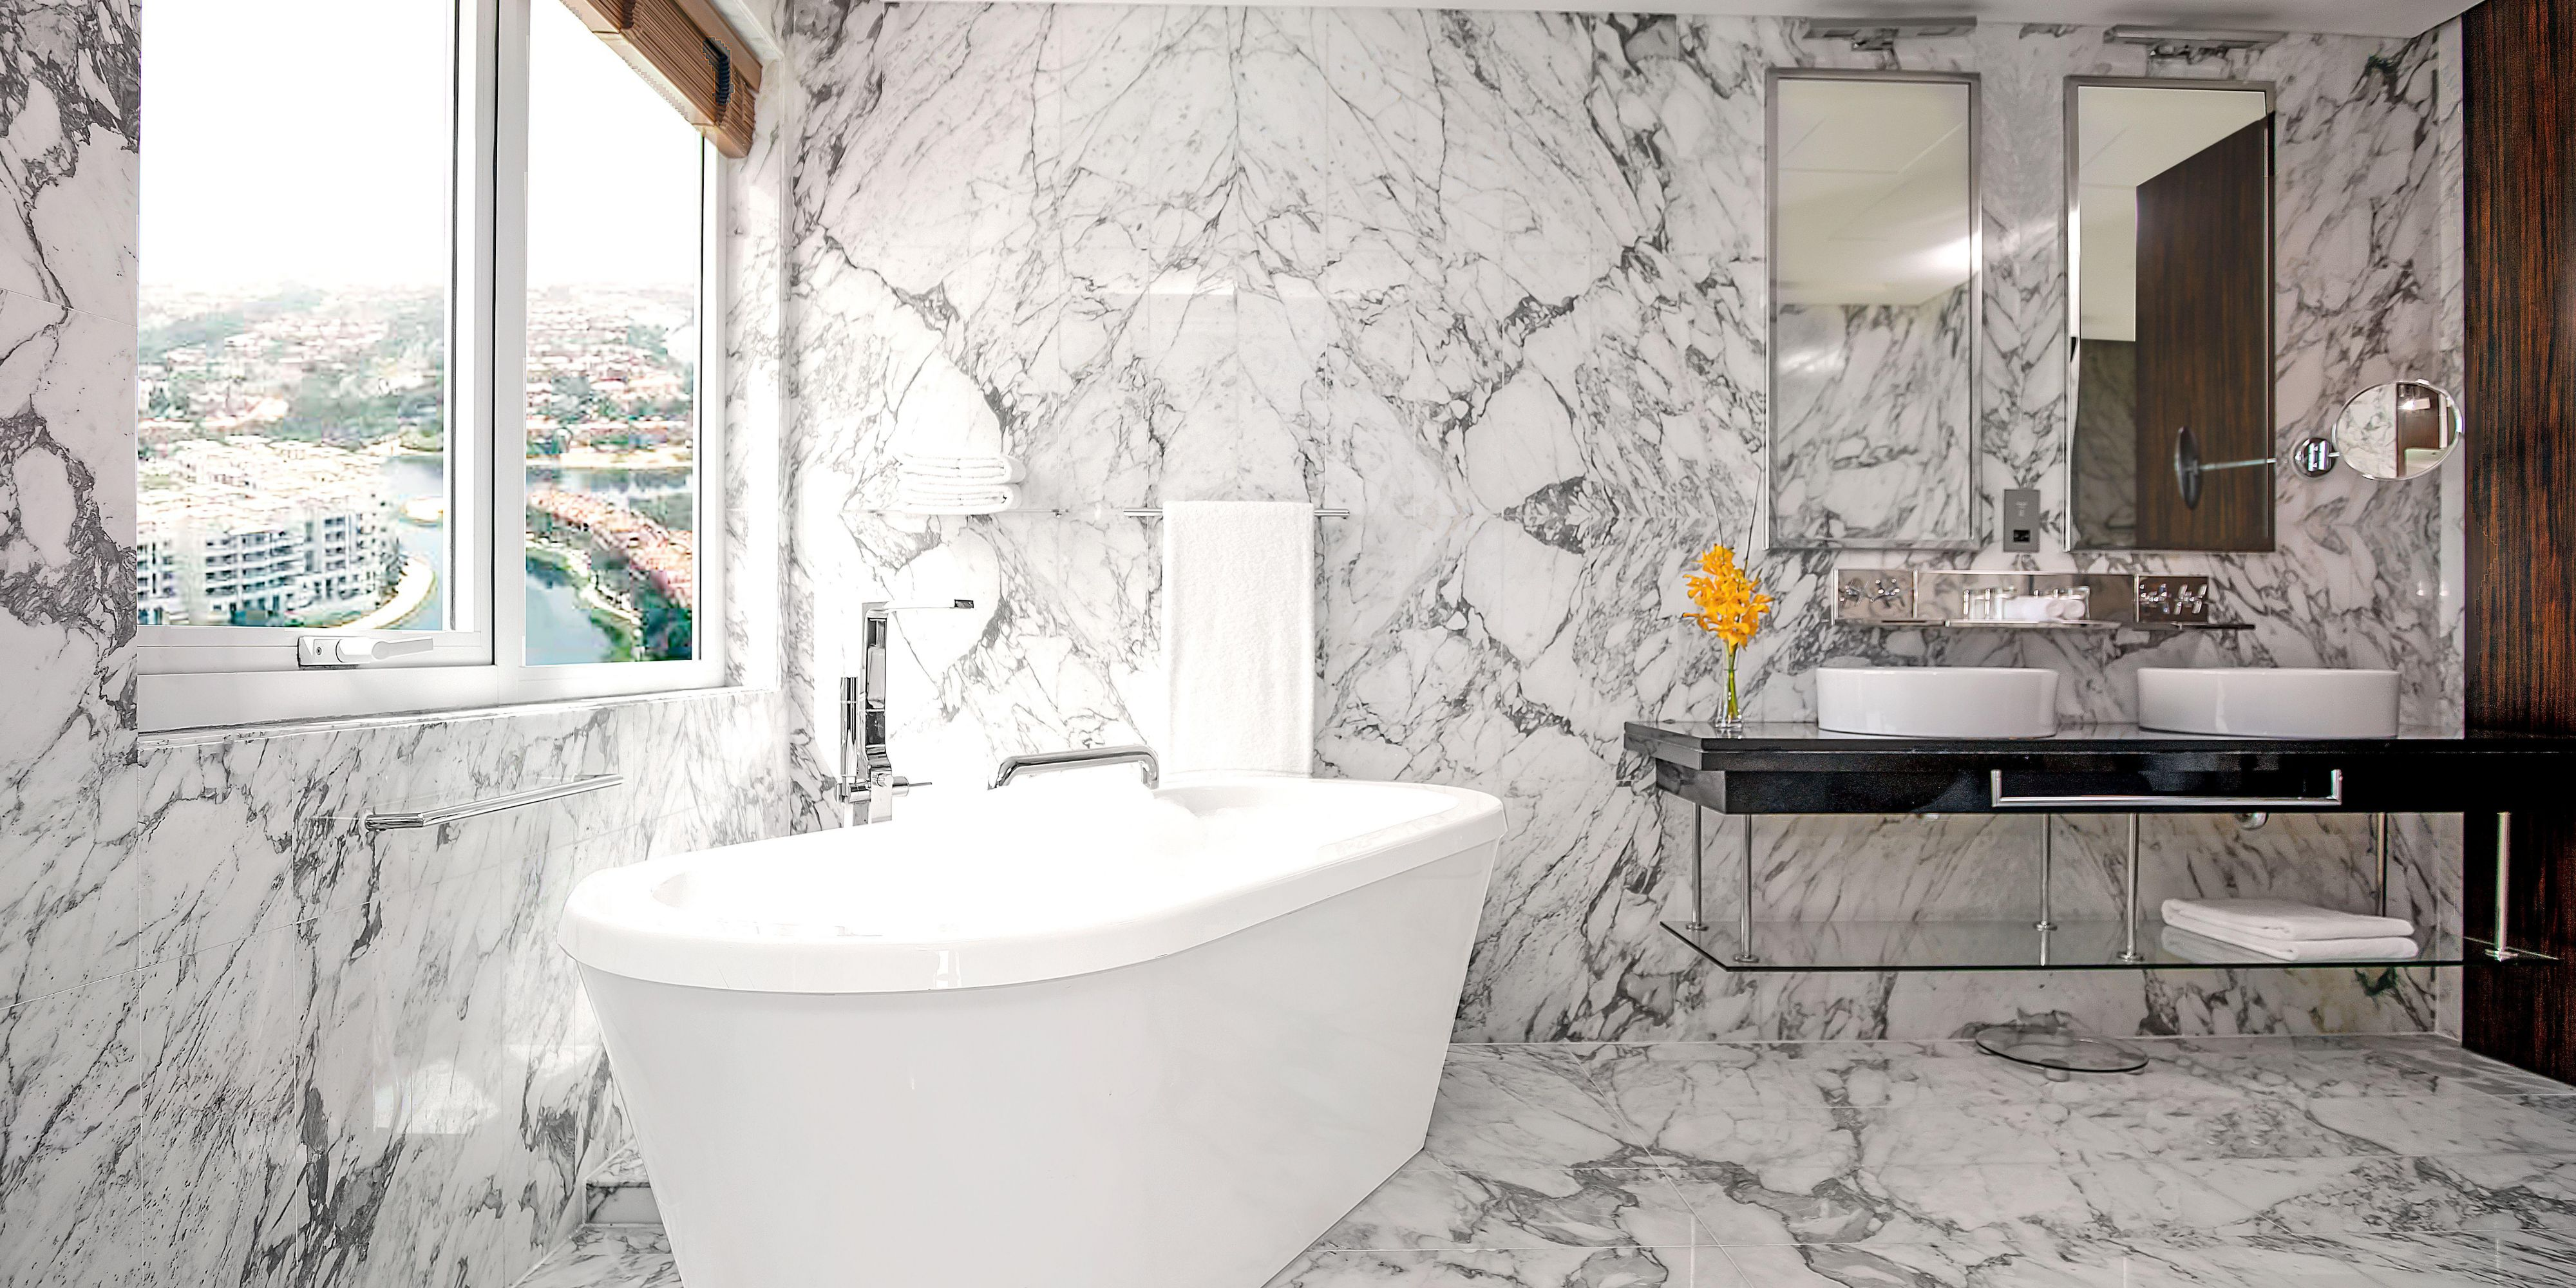 Take a soak in our luxurious stand-alone bathtub in Deluxe suite